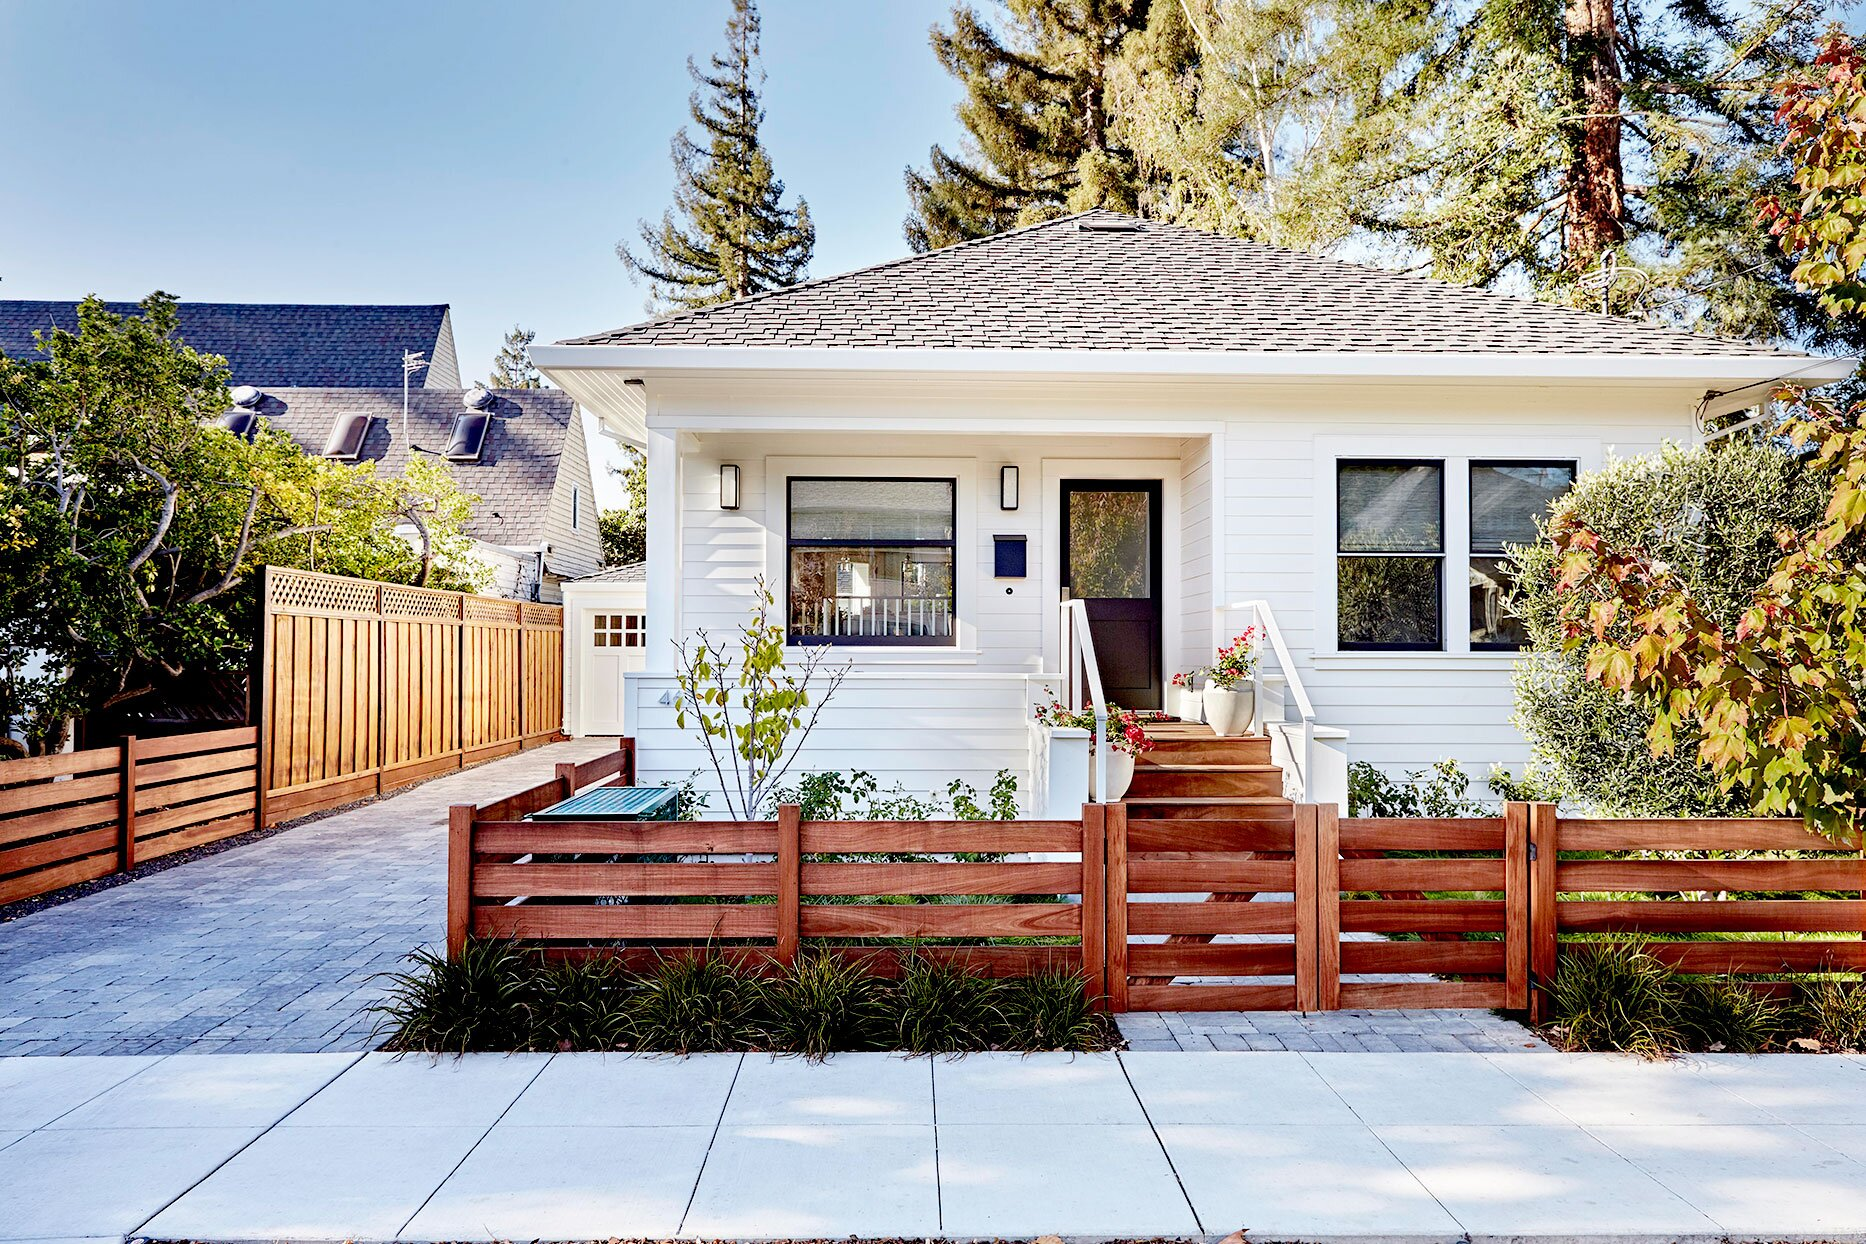 Why Should Fence Companies Offer Sustainable Building Material?